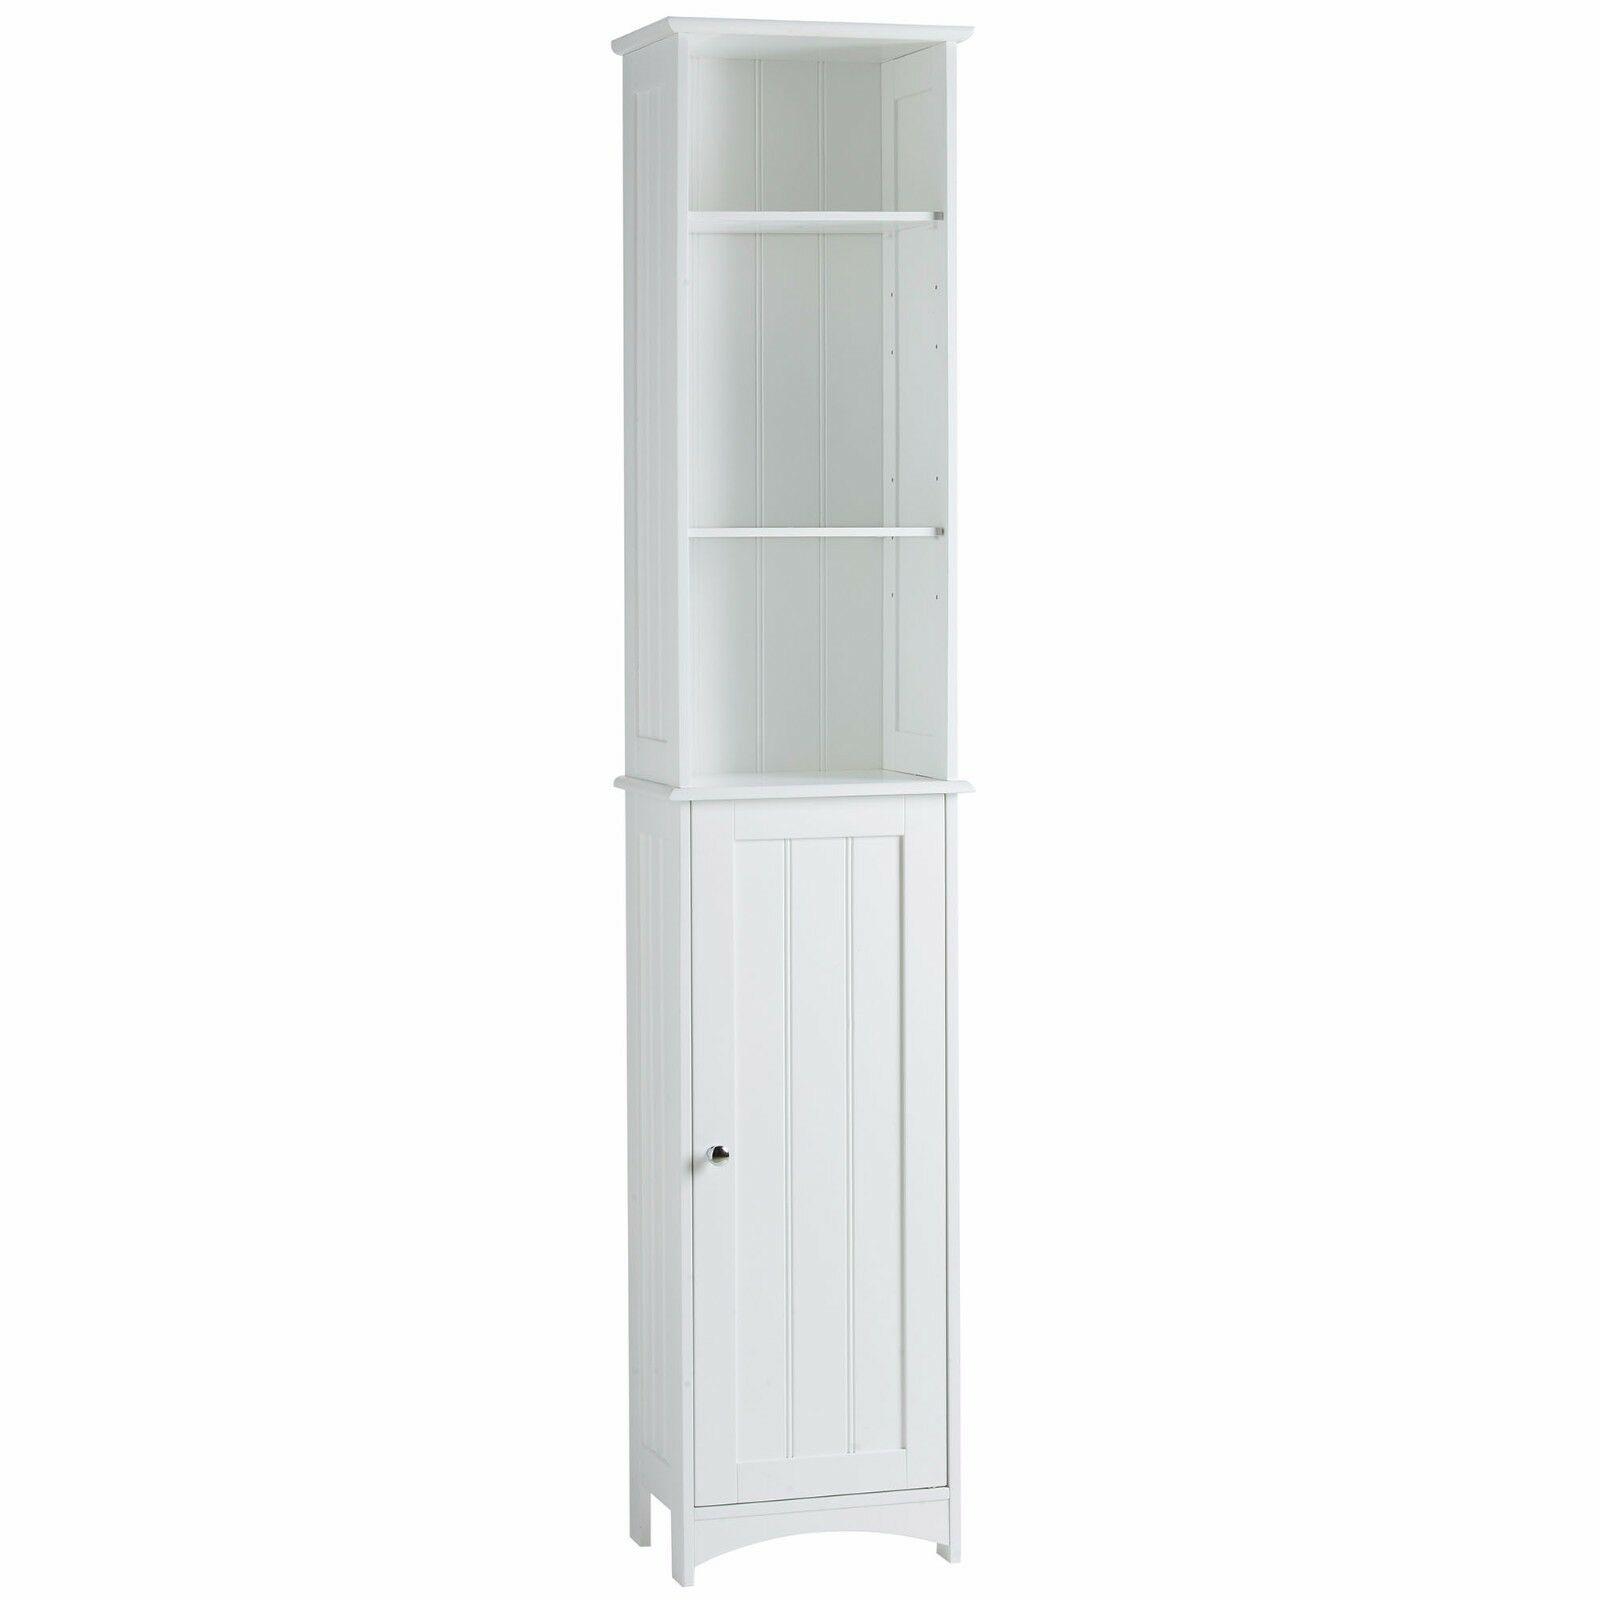 tall bathroom storage cabinets with doors vonhaus colonial white unit boy bathroom door cabinet 25781